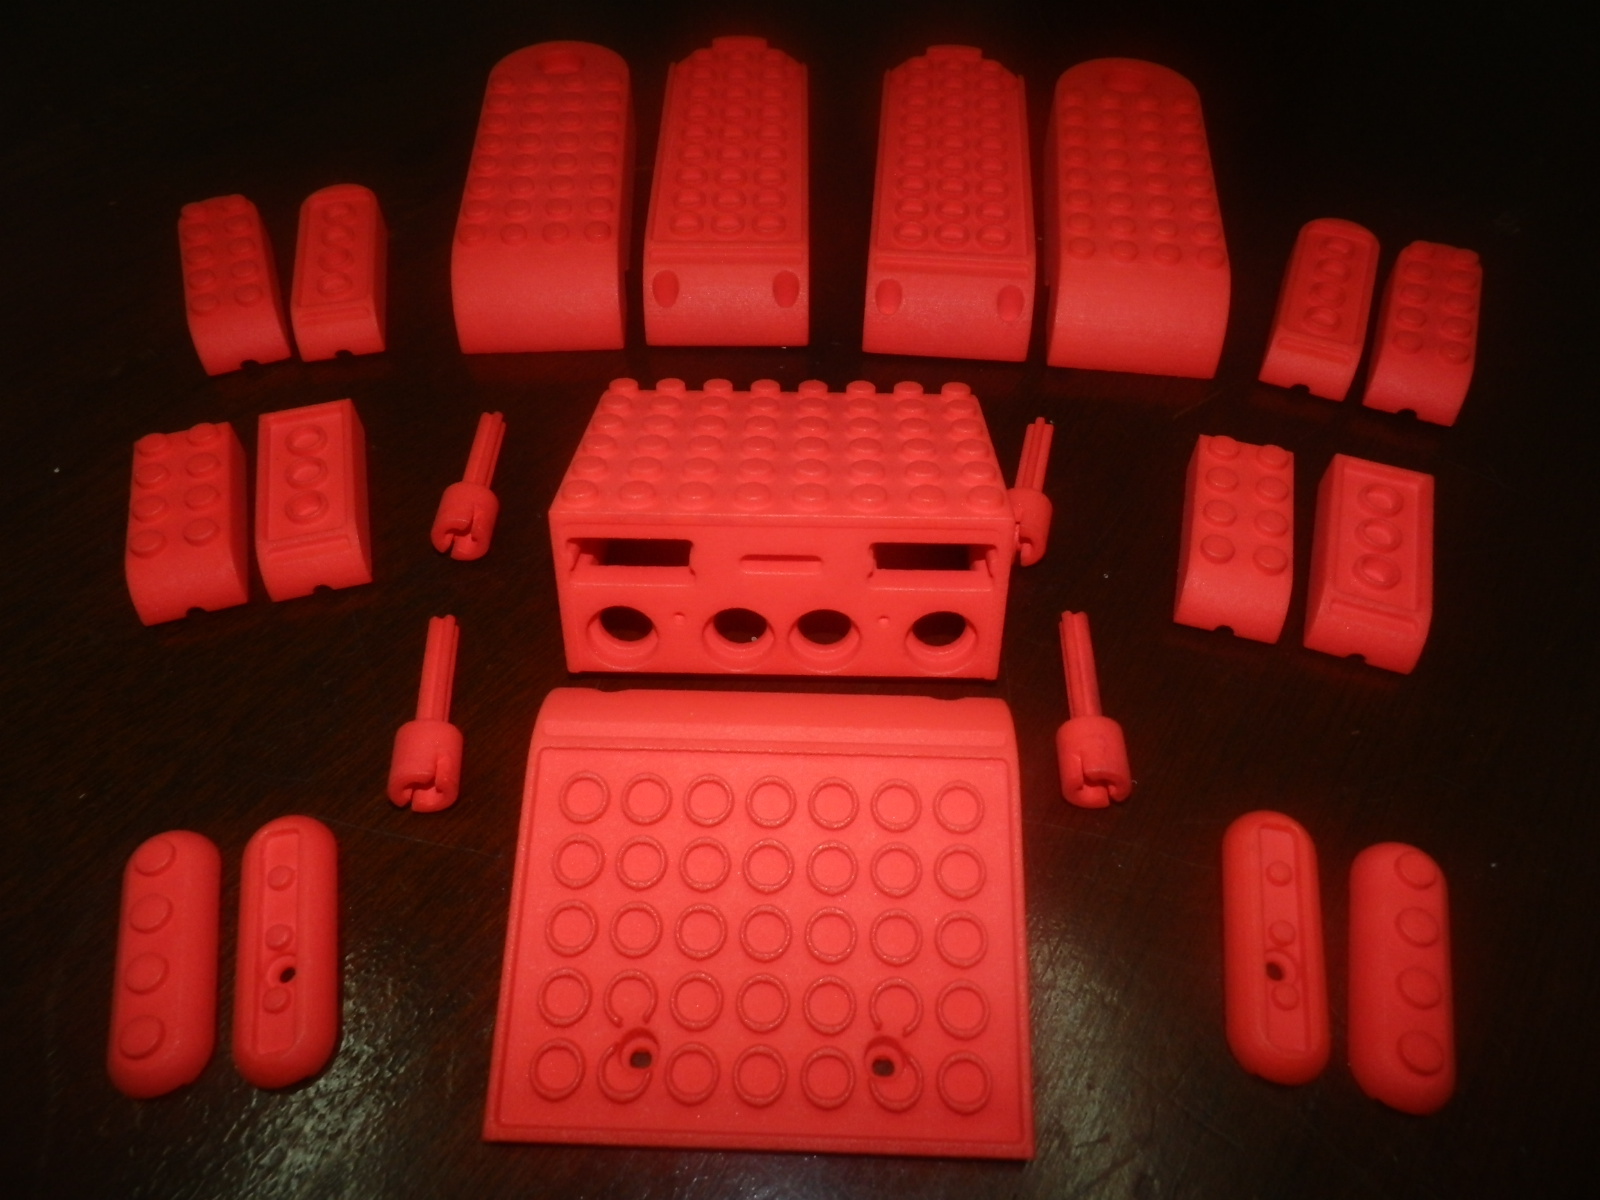 3D printed prototype parts